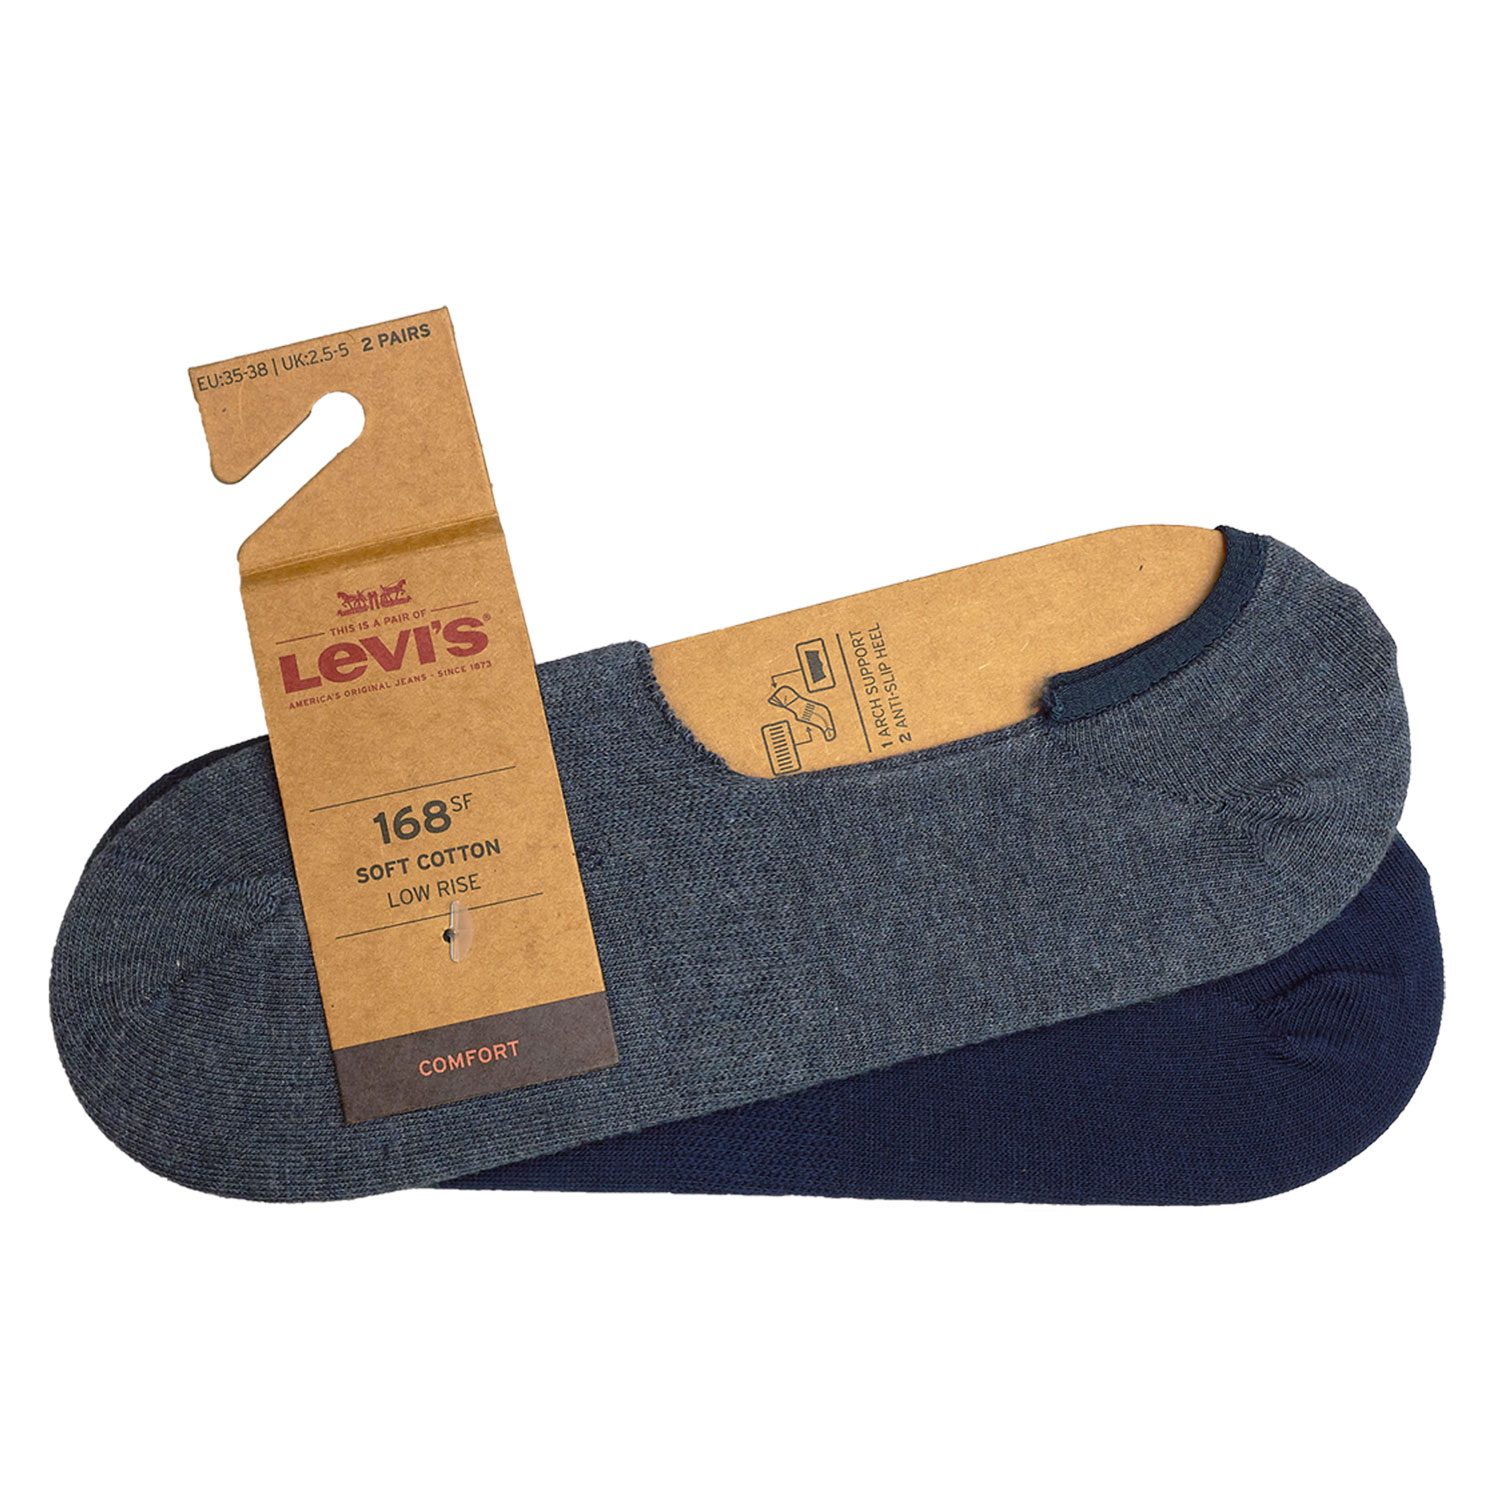 Levi's Füßlinge 8 Paar Low Rise Soft Cotton 943001001 Sneaker Footies Levis – Bild 5